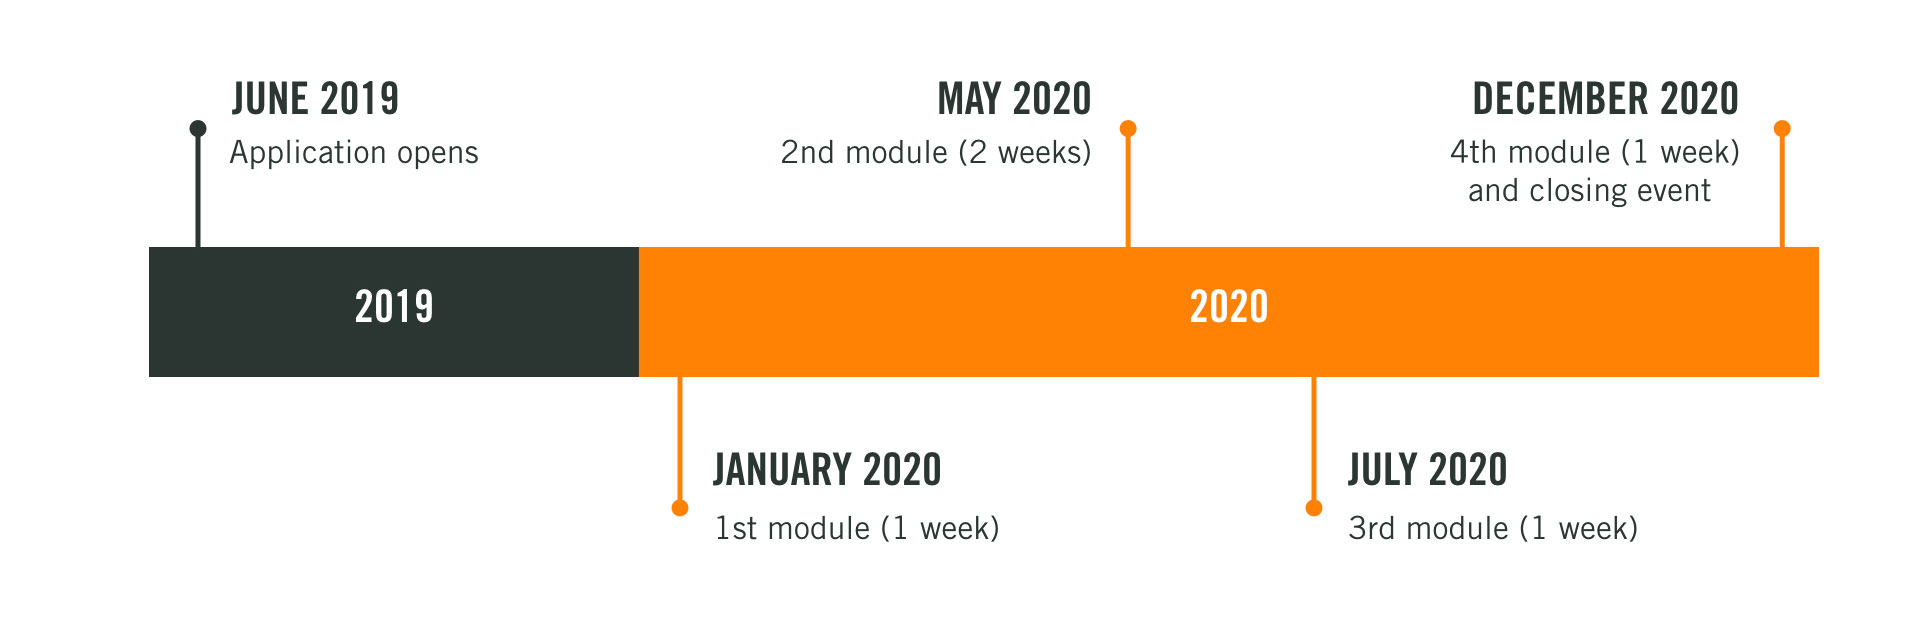 This graphic shows the program timeline. The program's application opens on June 2019. In January 2020 we will have our first one-week module. The second module will be two tweeks long and will take place in May 2020. The last one-week module will take place in December 2020, followed by a closing event.